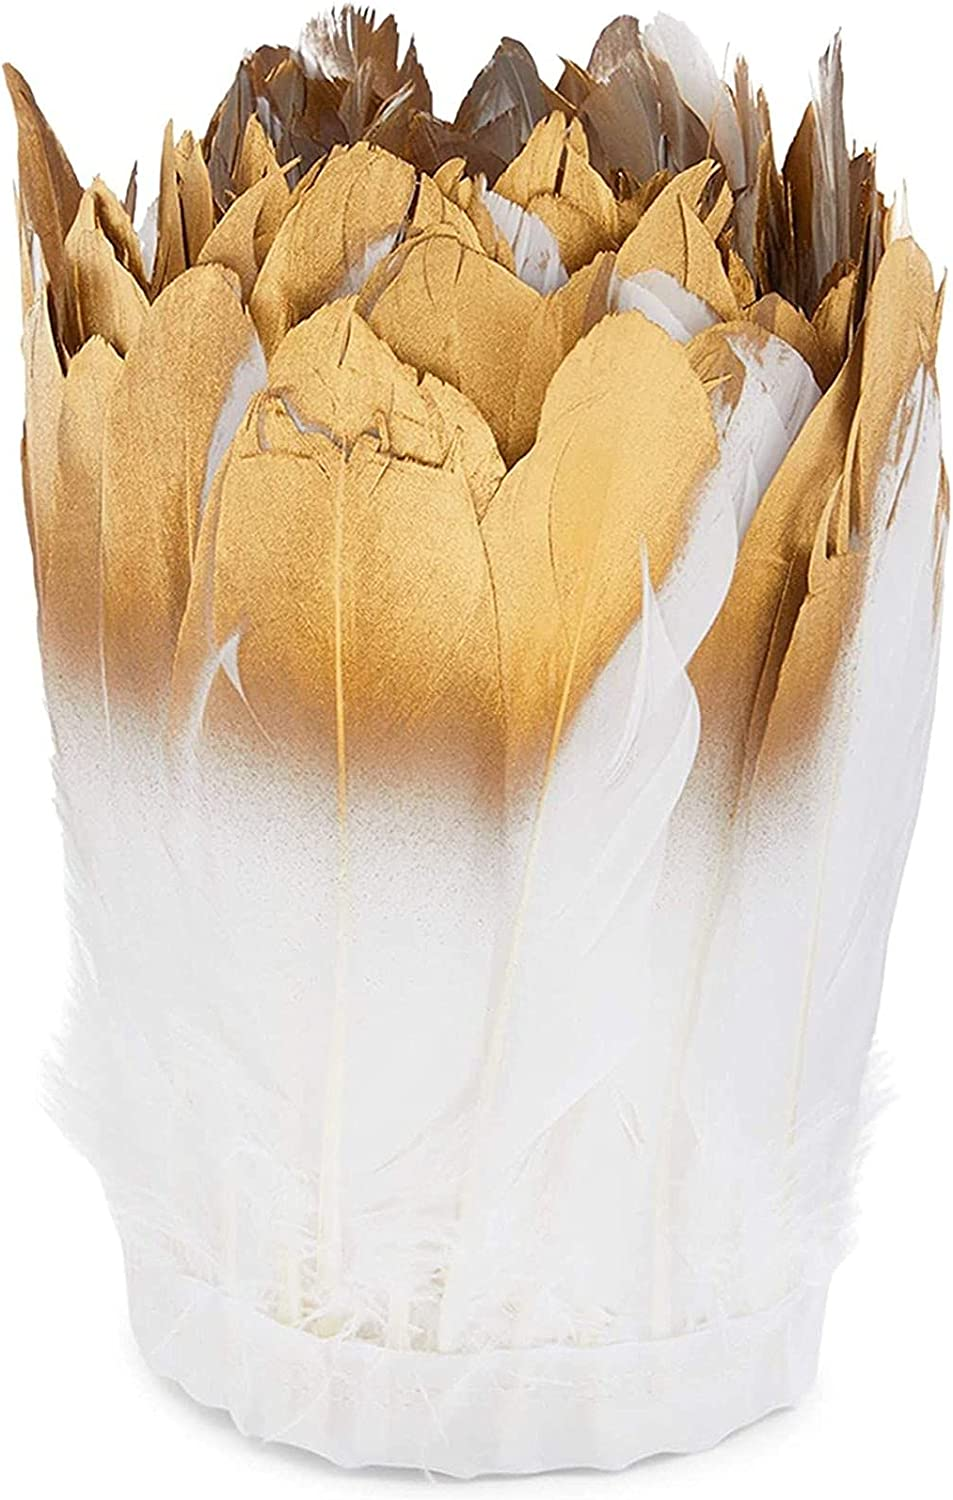 White and Gold Goose Feathers Decorations for Costumes Super-cheap Crafts Fashion